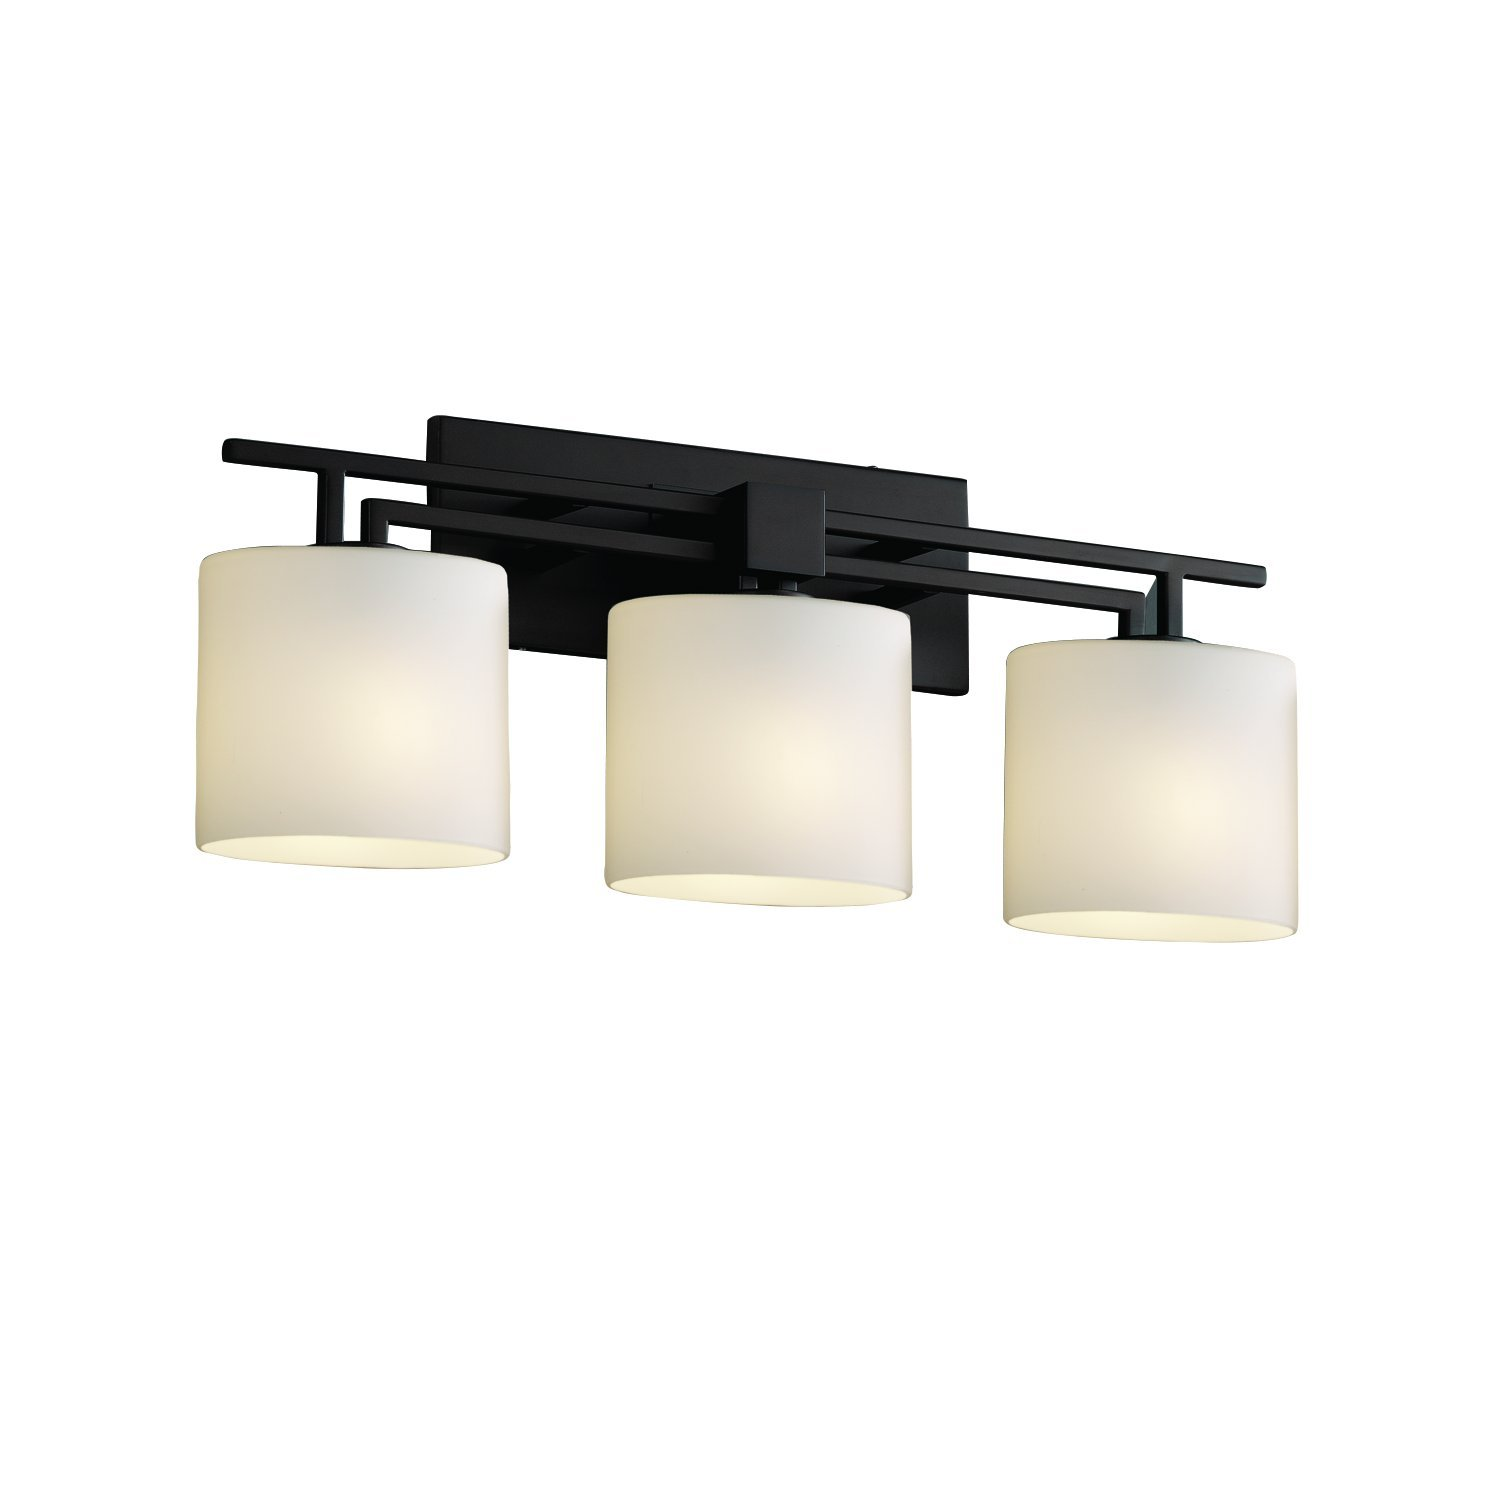 Justice Design Group Fusion 3-Light Bath Bar – Matte Black Finish with Opal Artisan Glass Shade